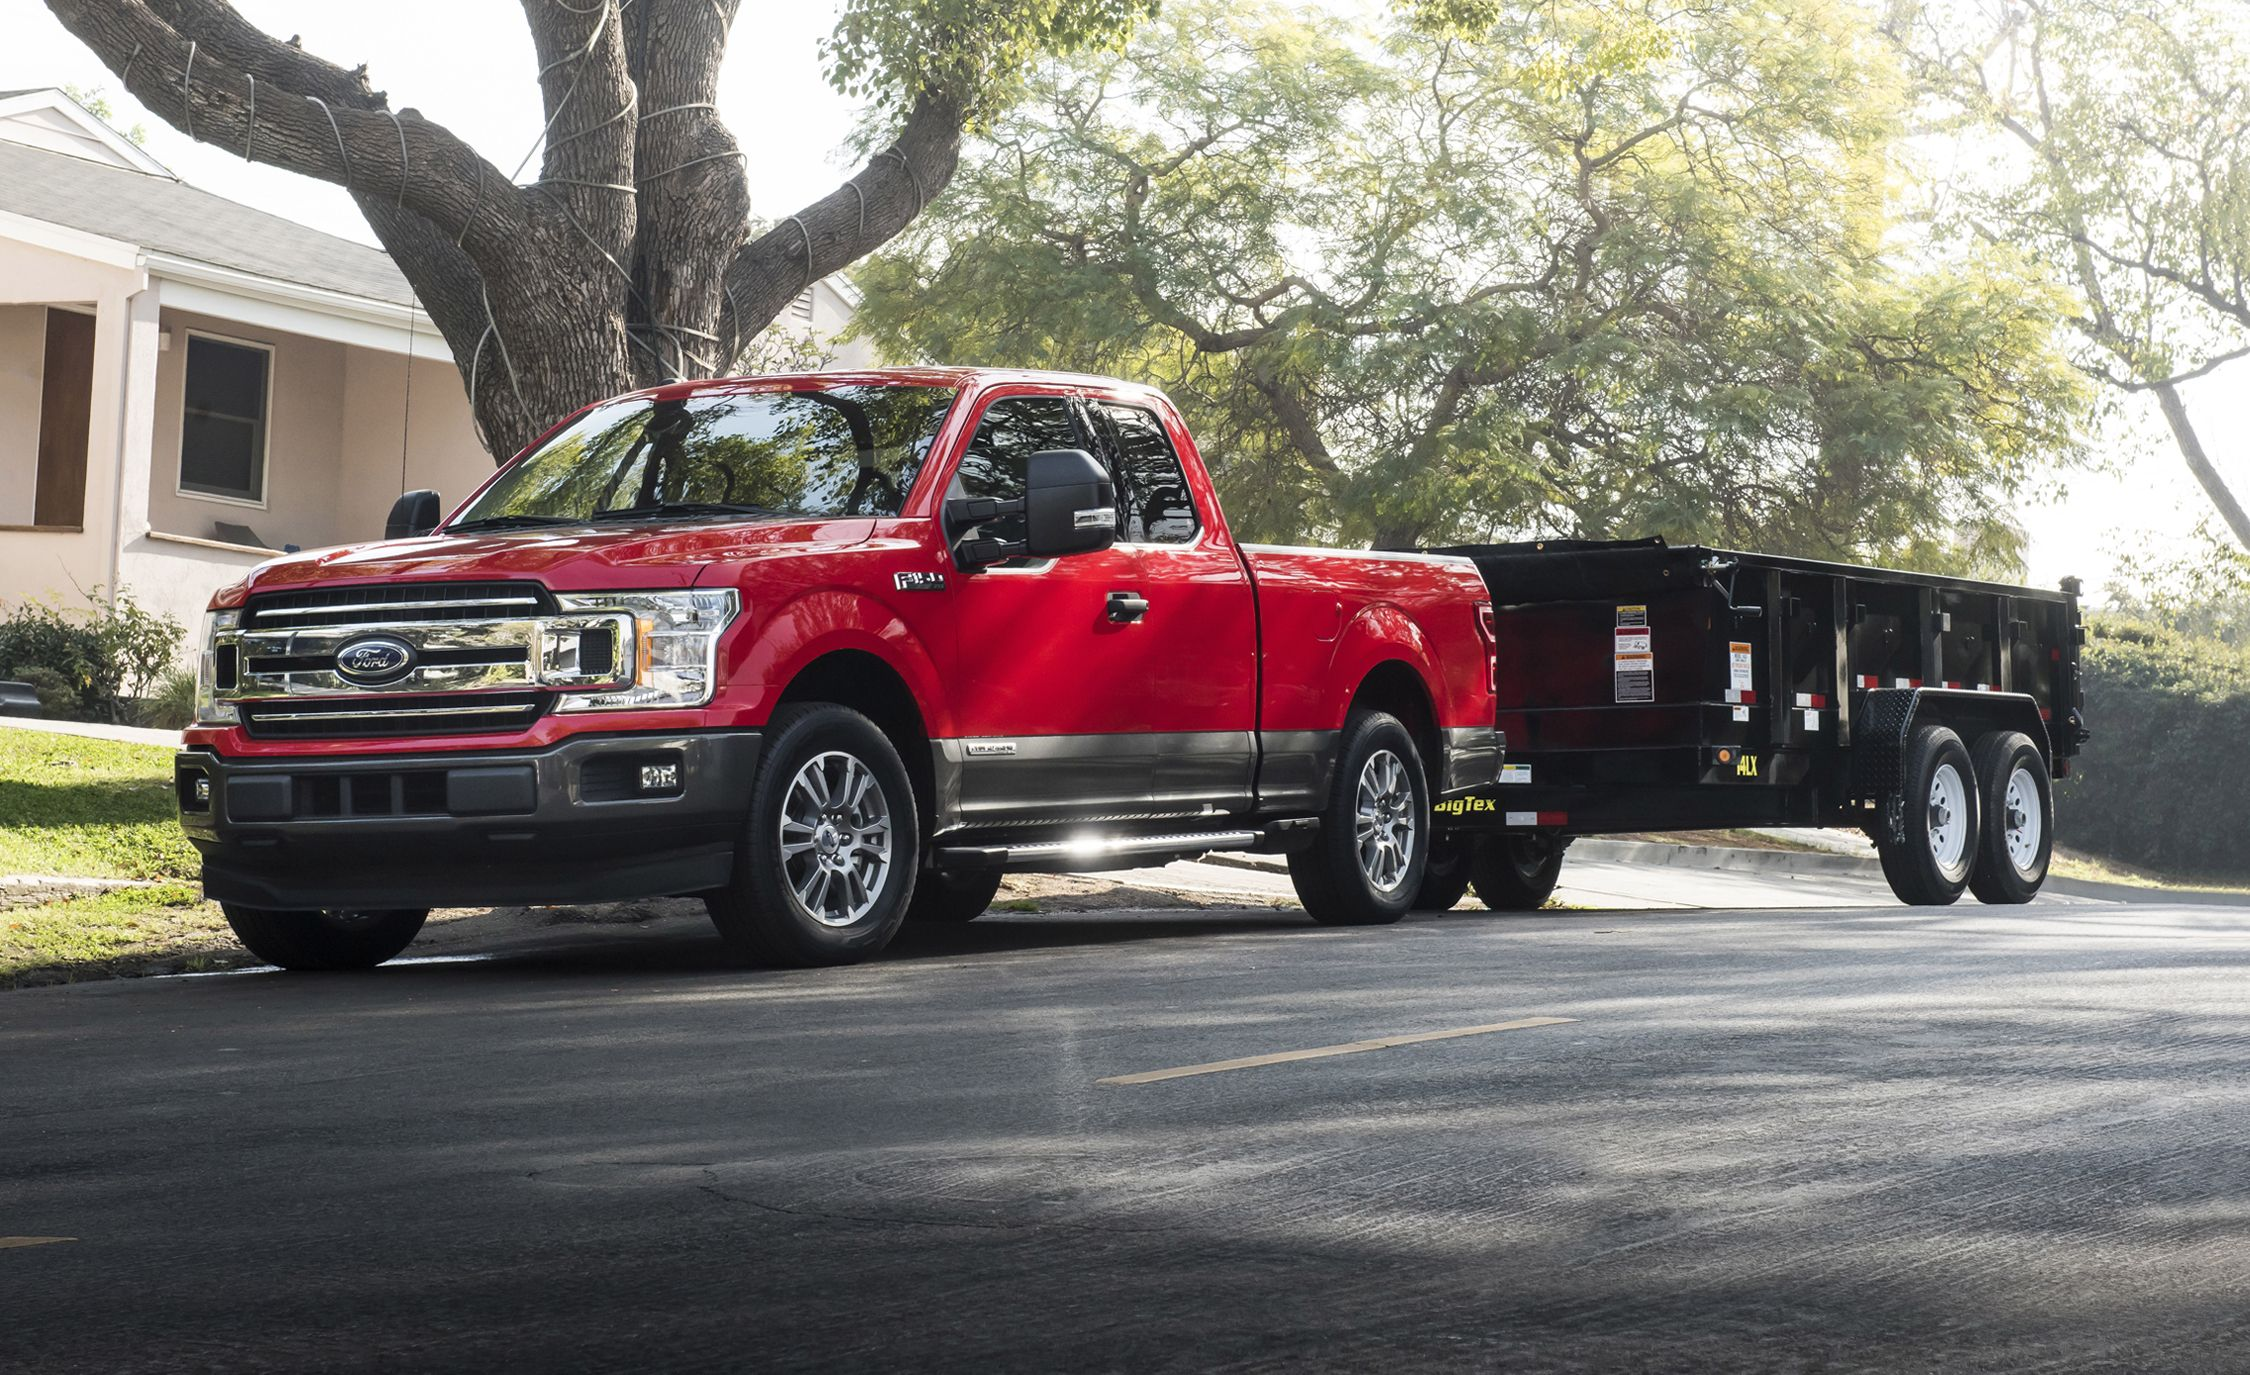 2018 ford f 150 diesel full details news car and driver rh caranddriver com Ford 150 to Silverado 2017 Ford Bronco